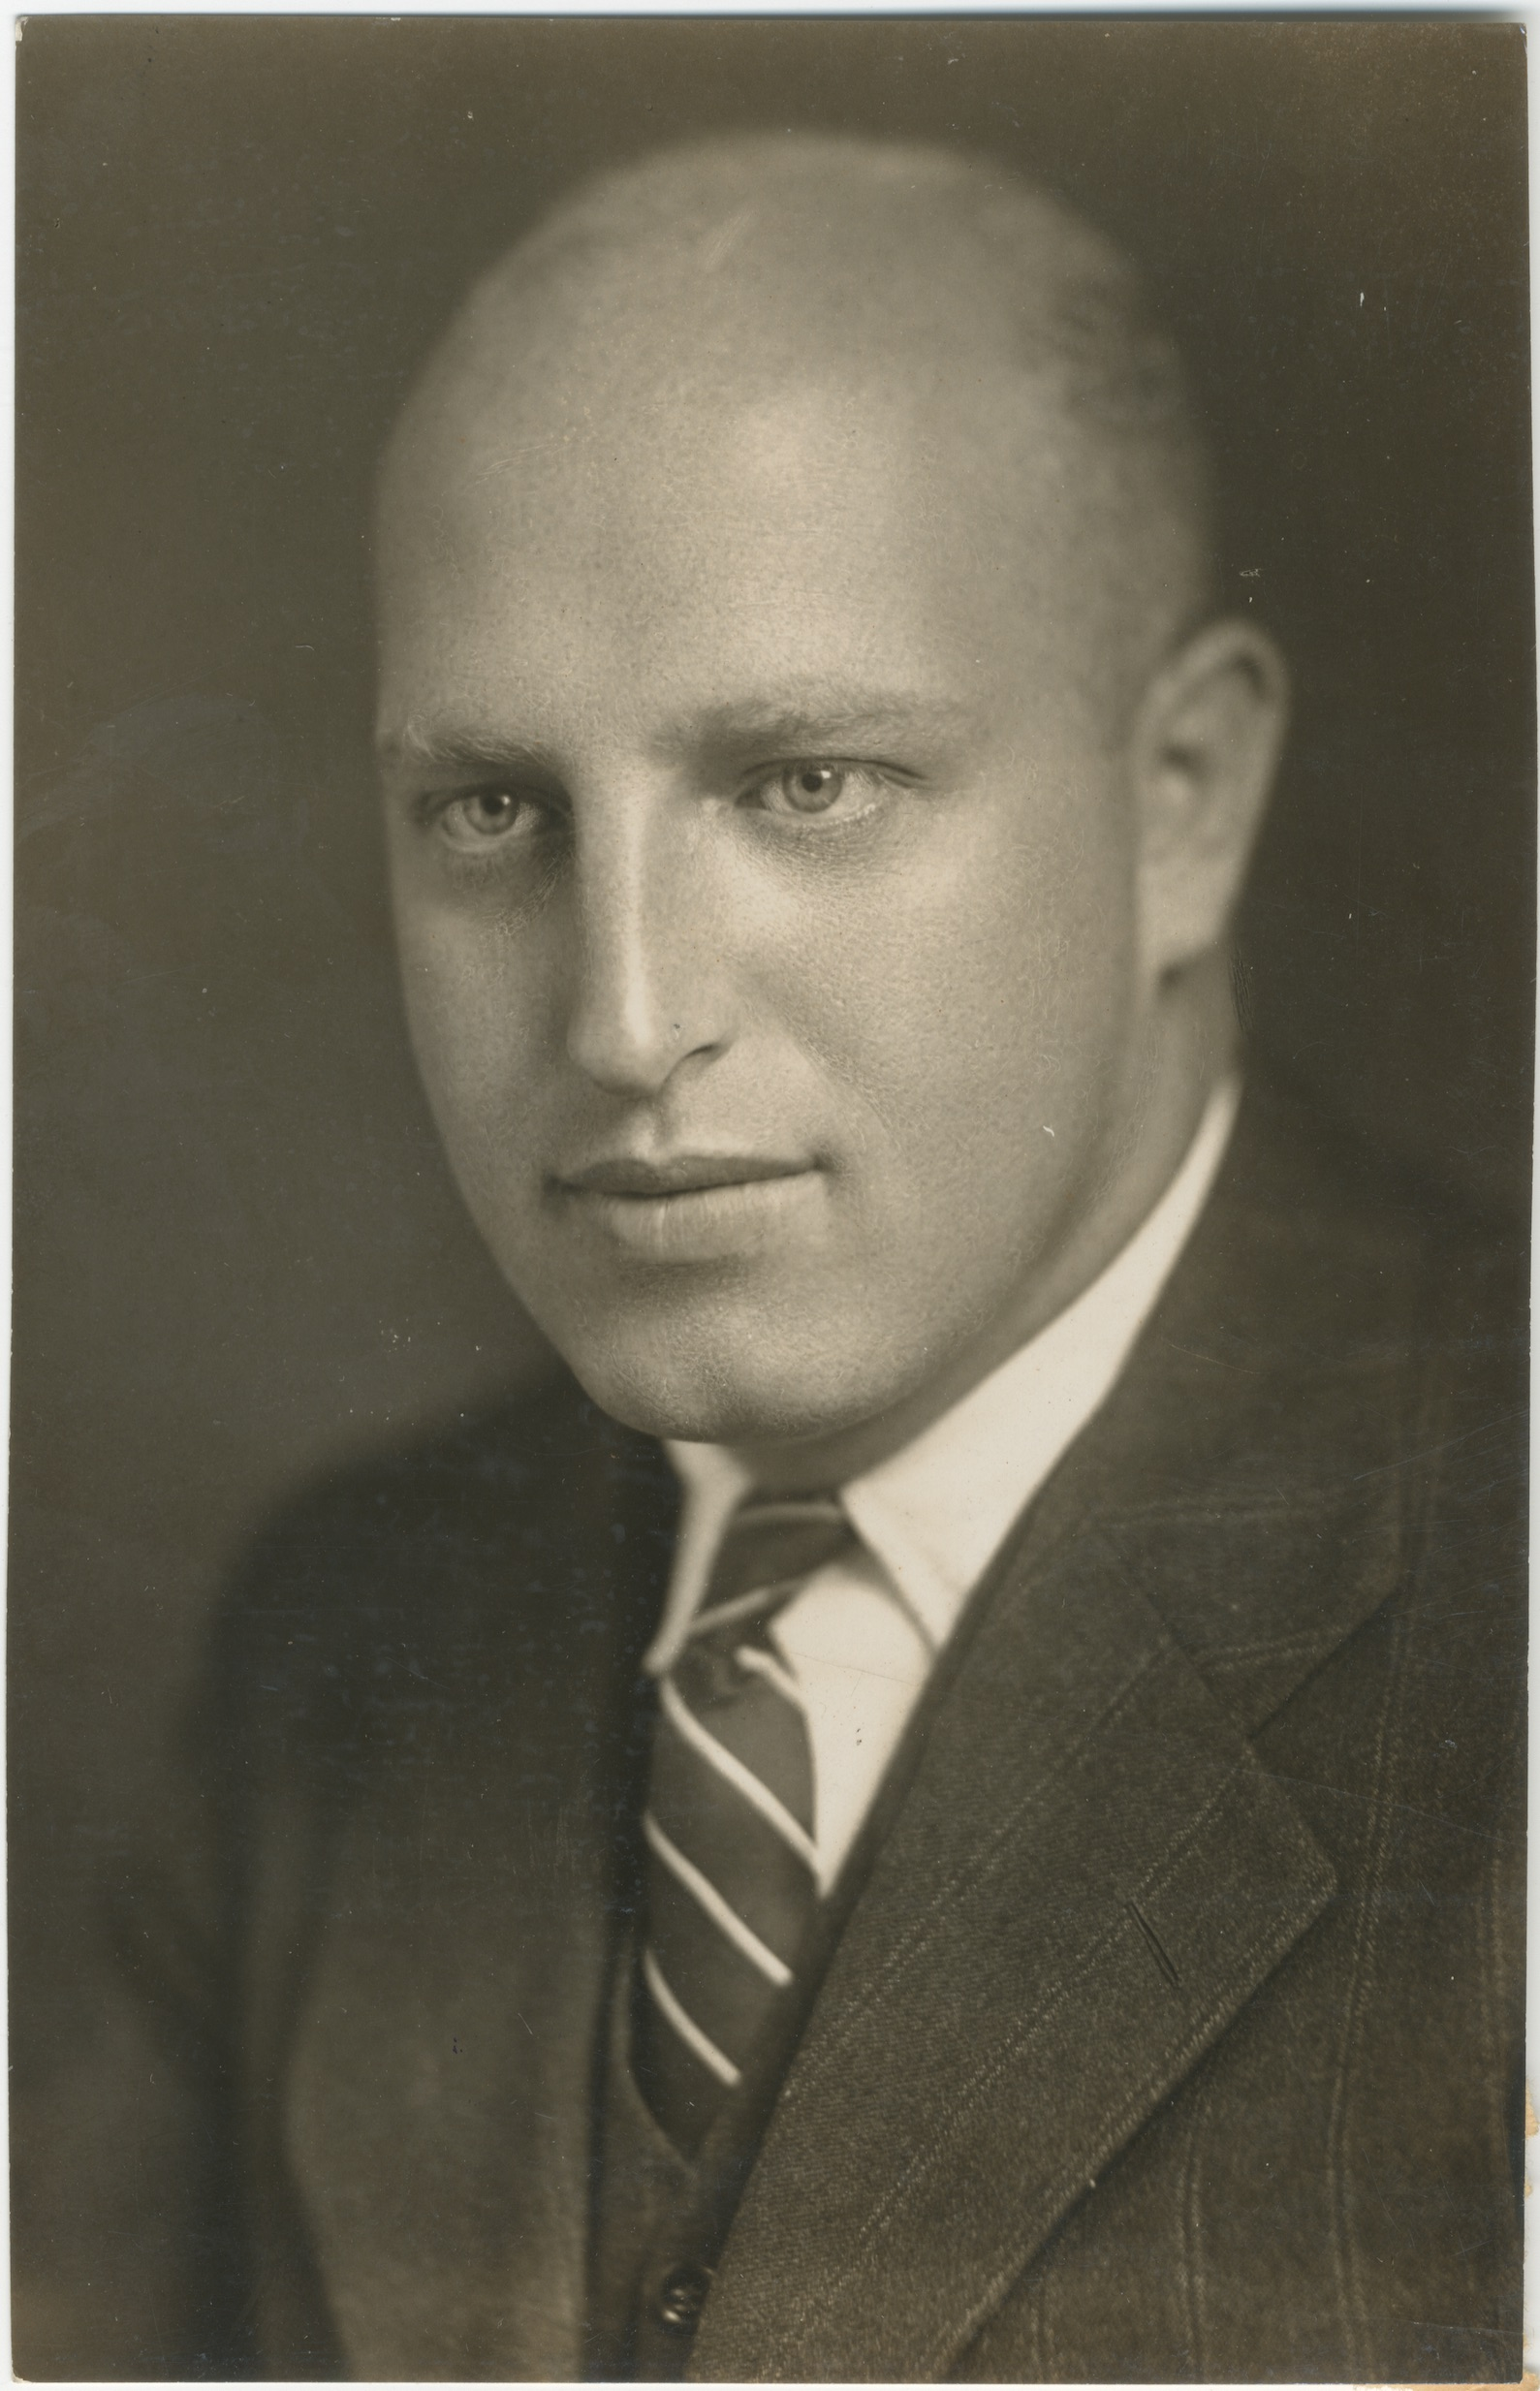 Franklin C. Cappon, Head Coach, Men's Basketball and Assistant Athletic Director, University of Michigan, 1936 image